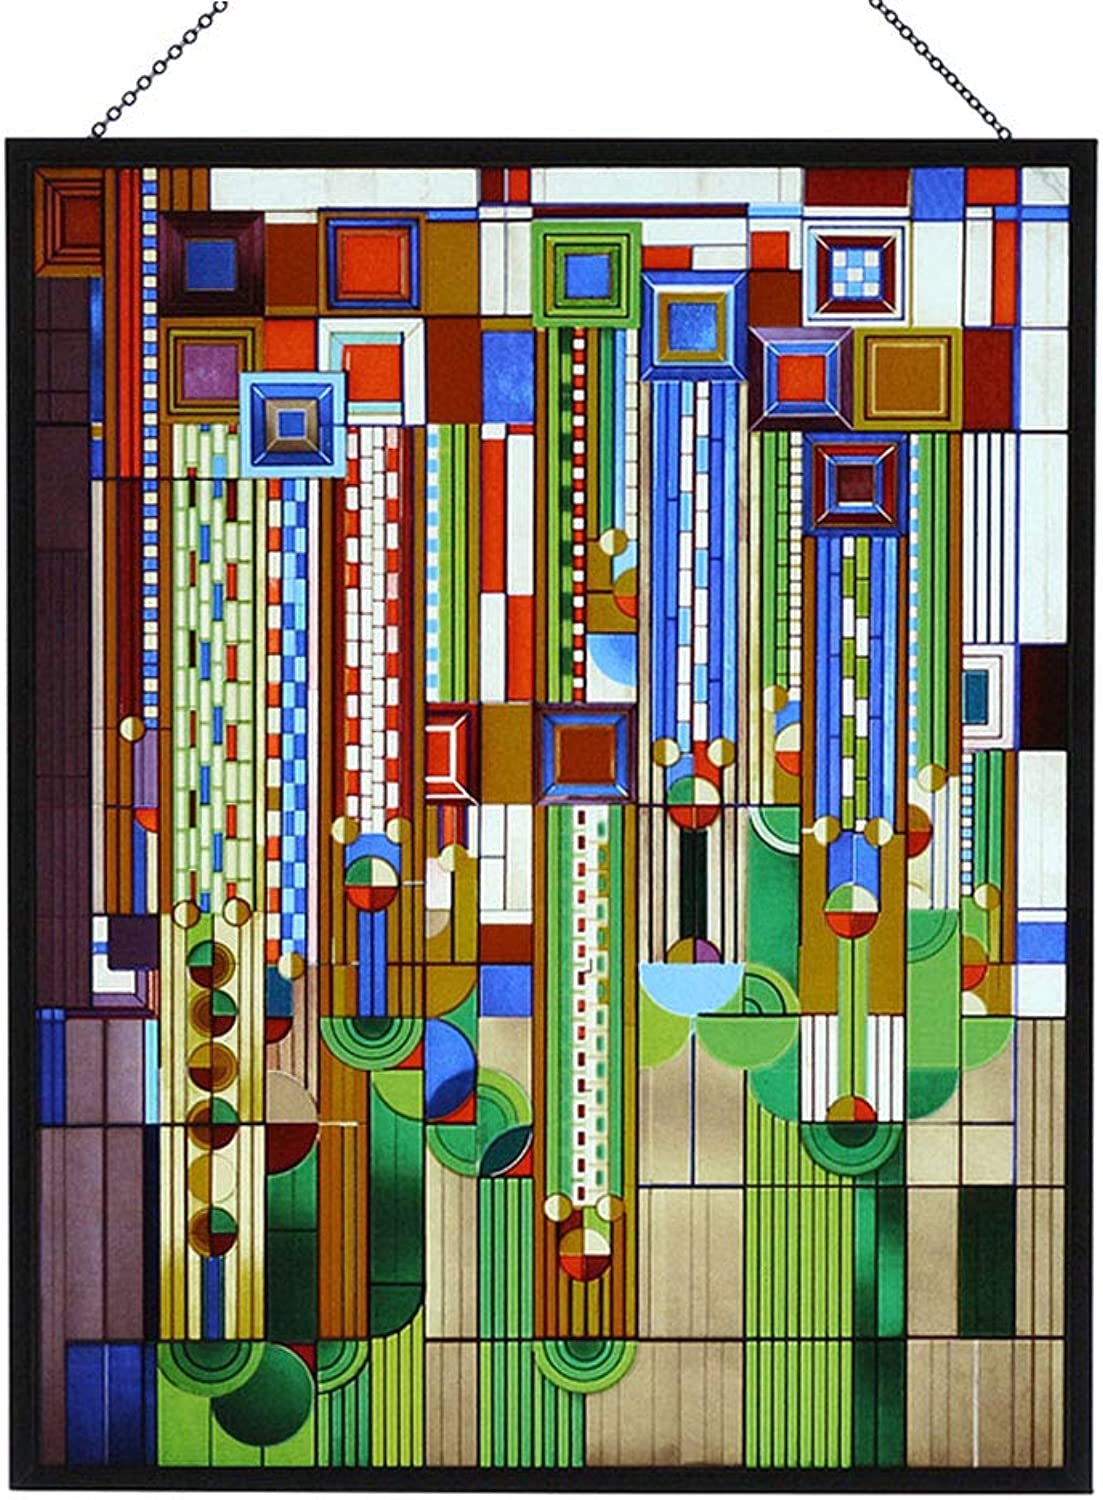 Frank Lloyd Wright Saguaro Stained Glass Metal Framed Ht 13.88  x 11